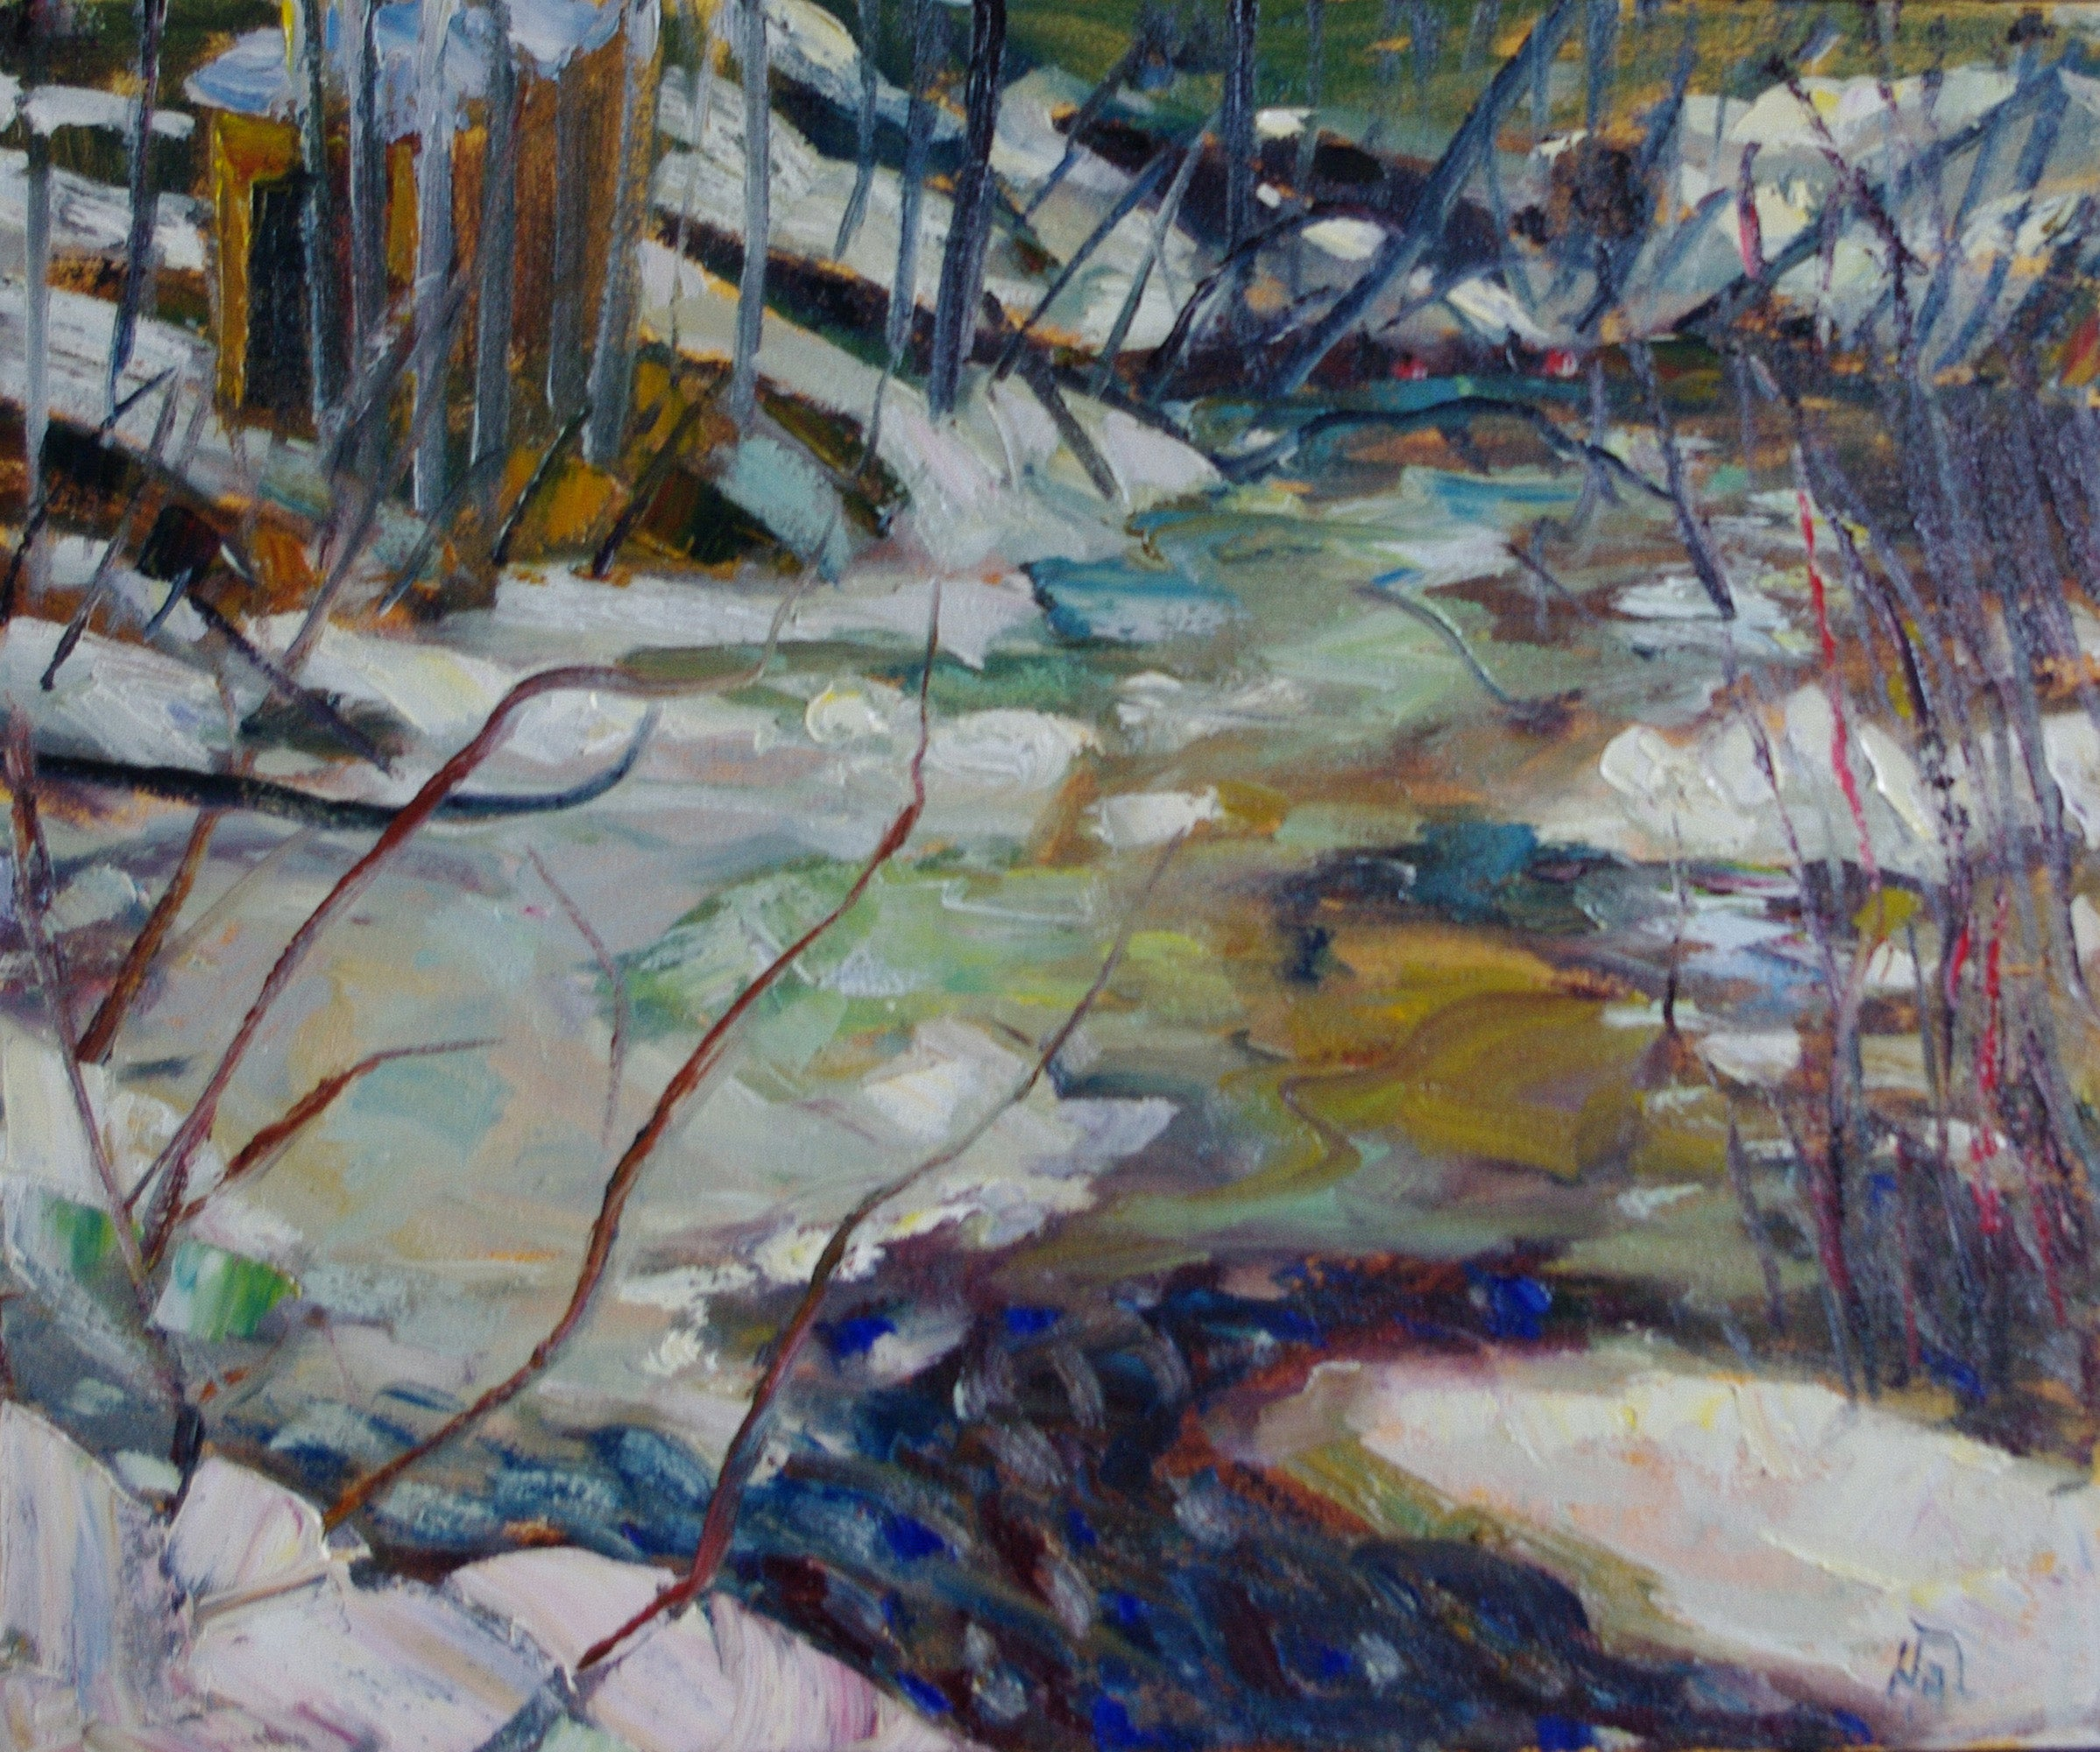 Lee Creek - Halin de Repentigny - painting